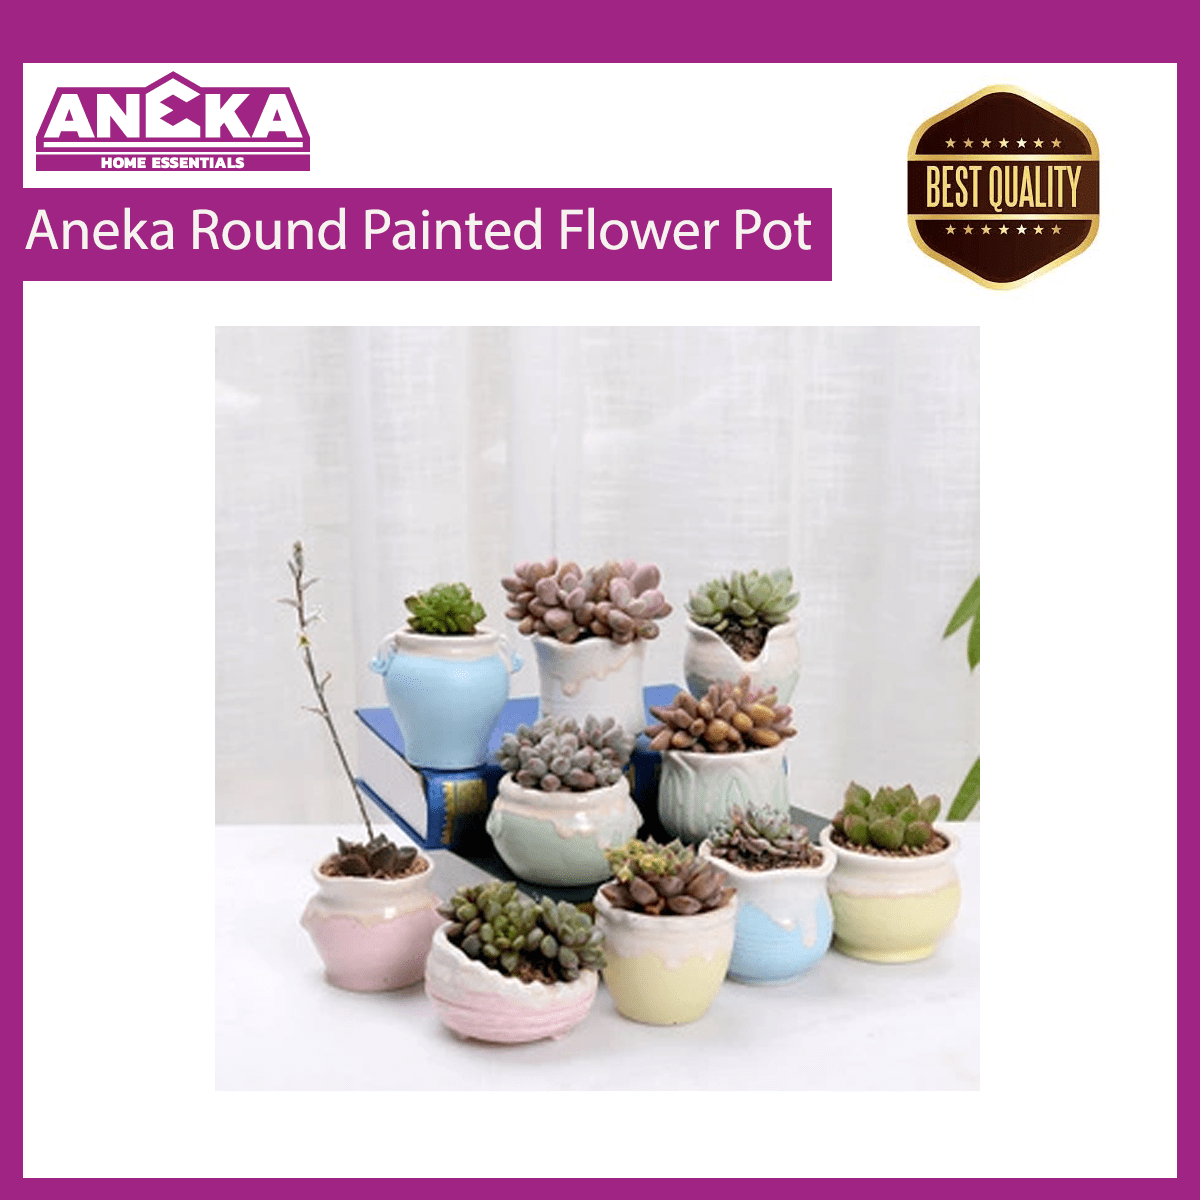 Aneka Round Painted Flower Pot